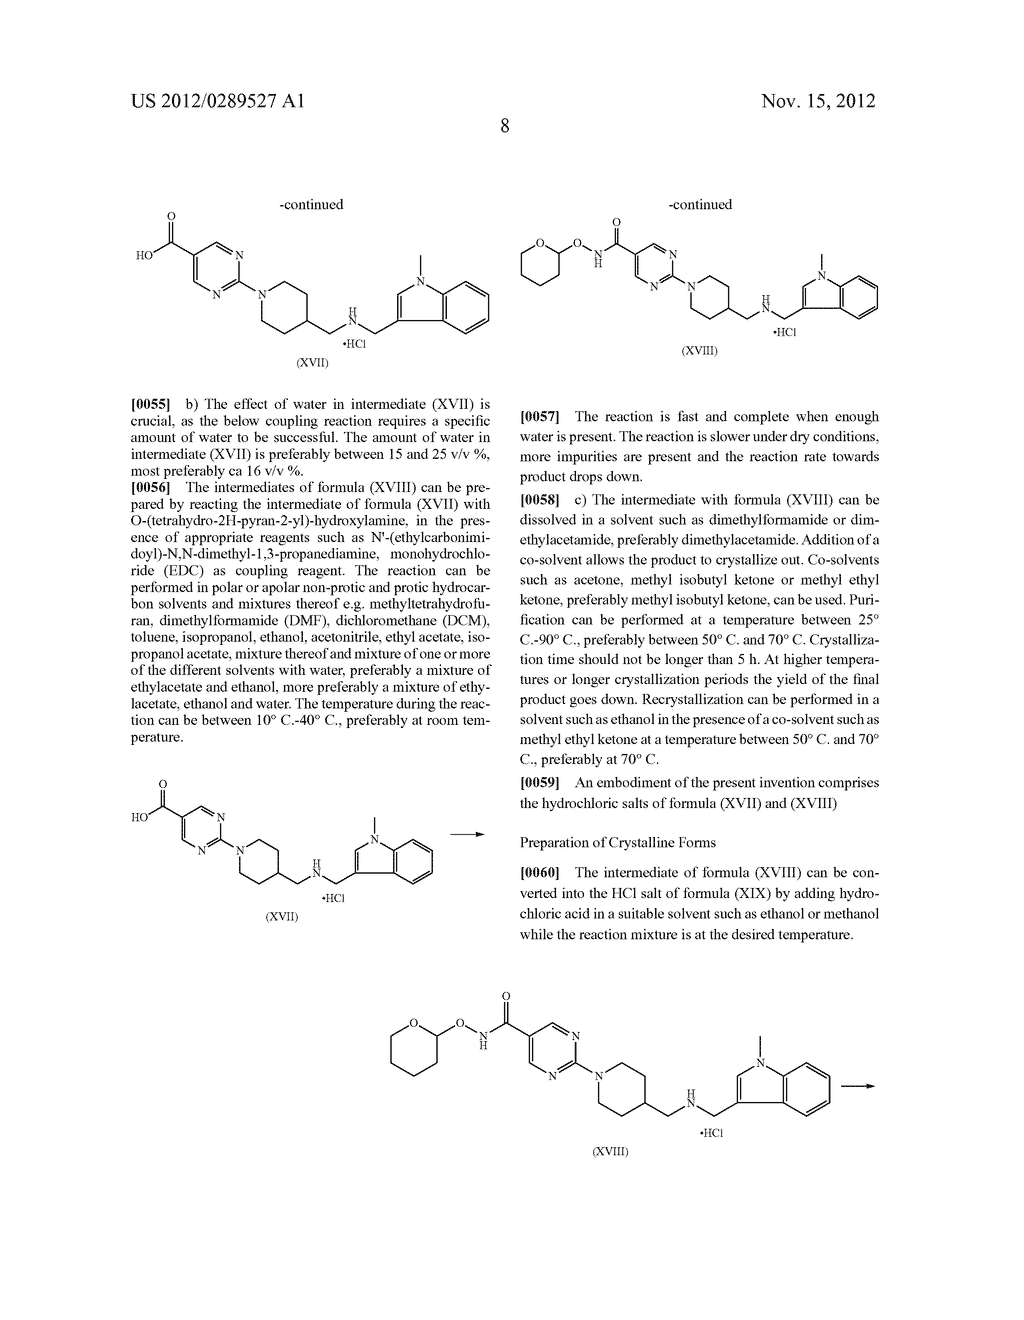 MONO-HYDROCHLORIC SALTS OF AN INHIBITOR OF HISTONE DEACETYLASE - diagram, schematic, and image 25